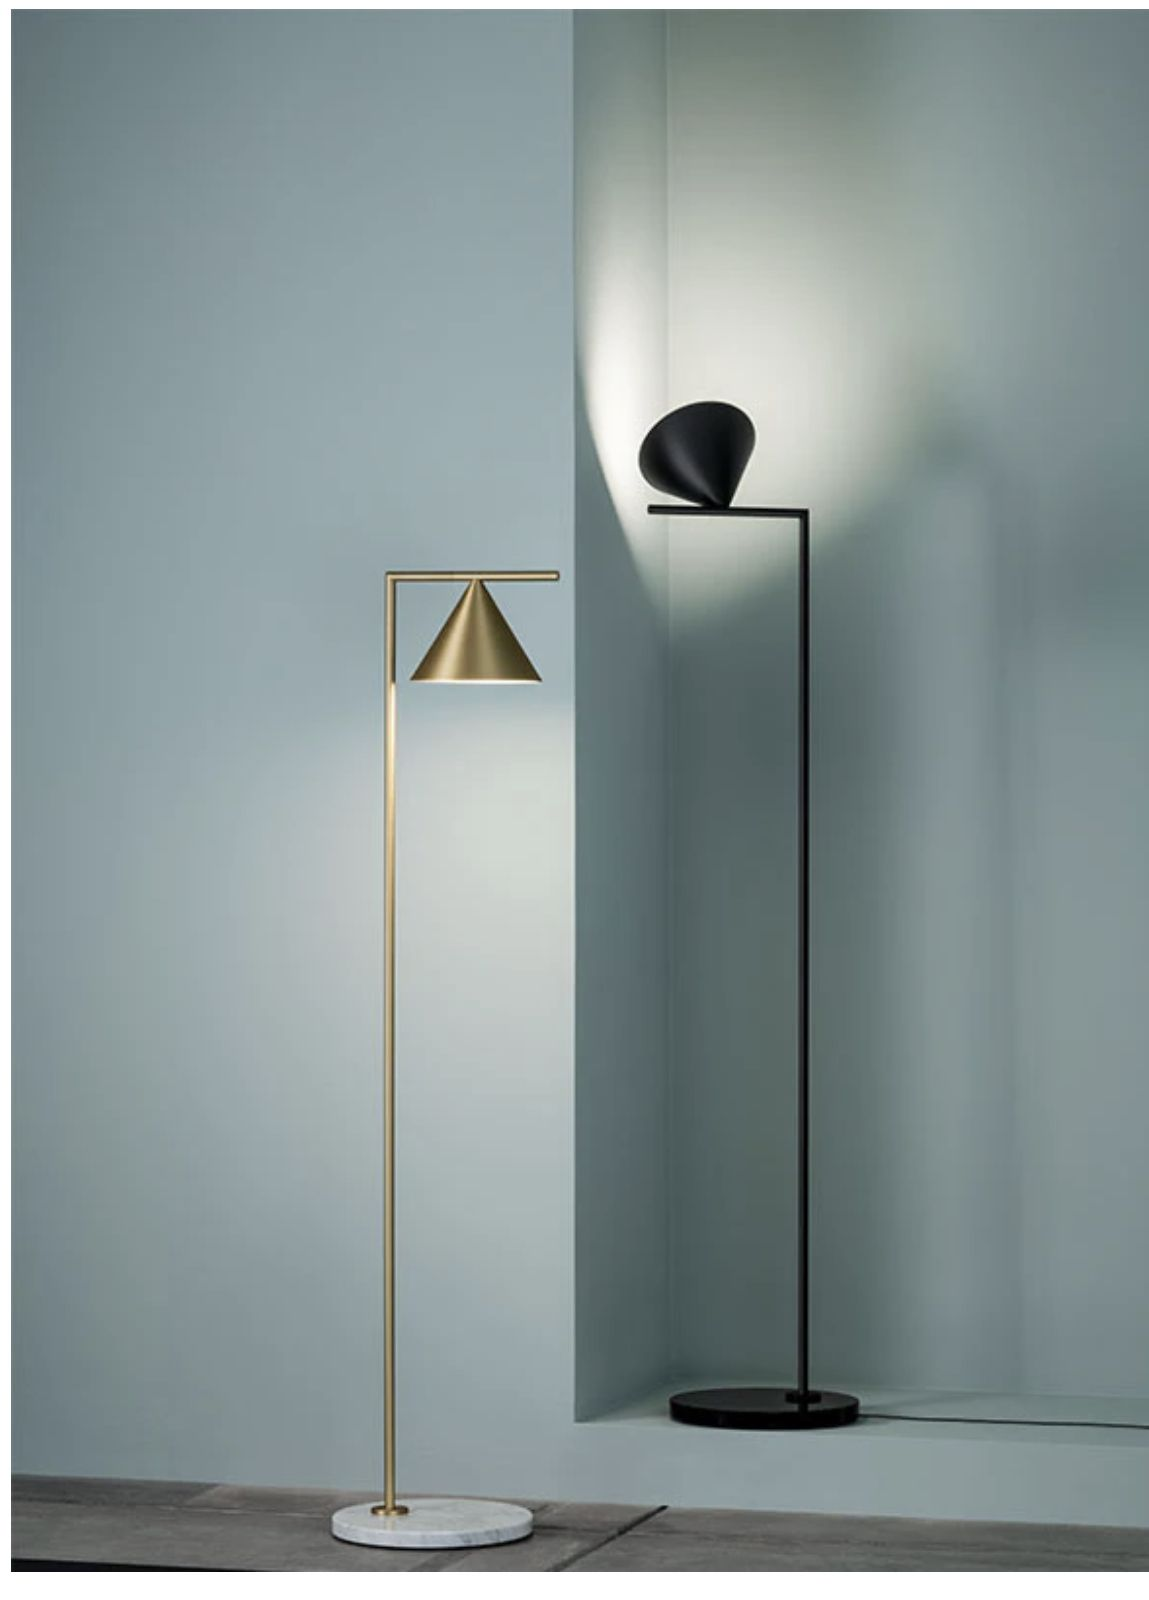 Pin By Di Code On Citadelle 1 In 2020 Contemporary Floor Lamps Floor Lamp Lamp